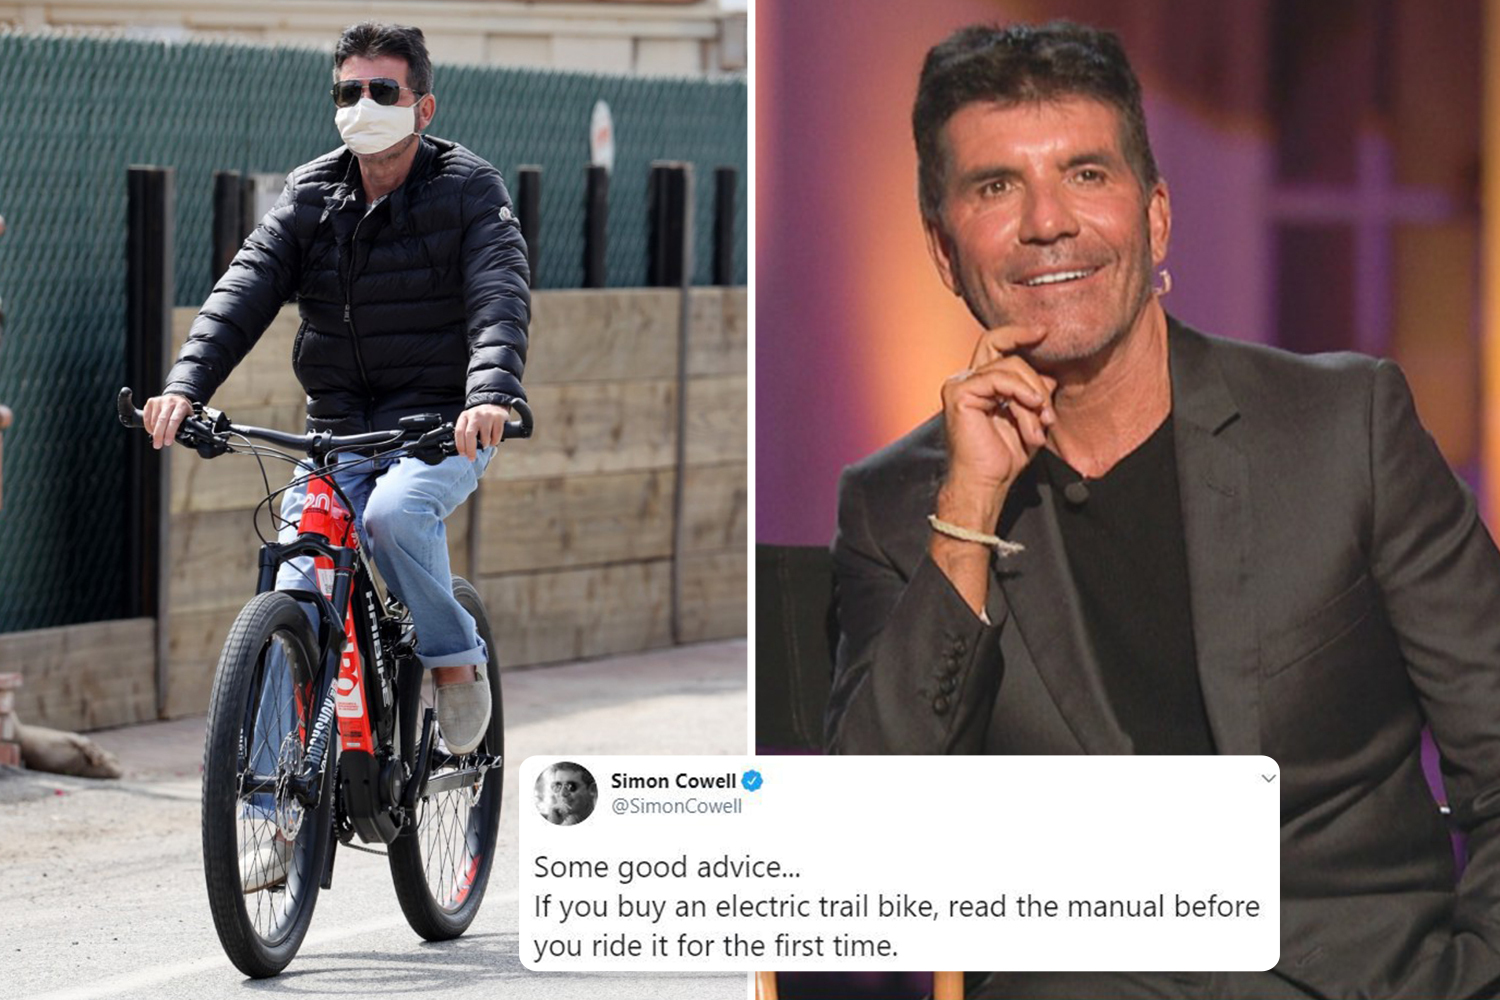 Simon Cowell admits he 'didn't read the manual' to electric bike ...